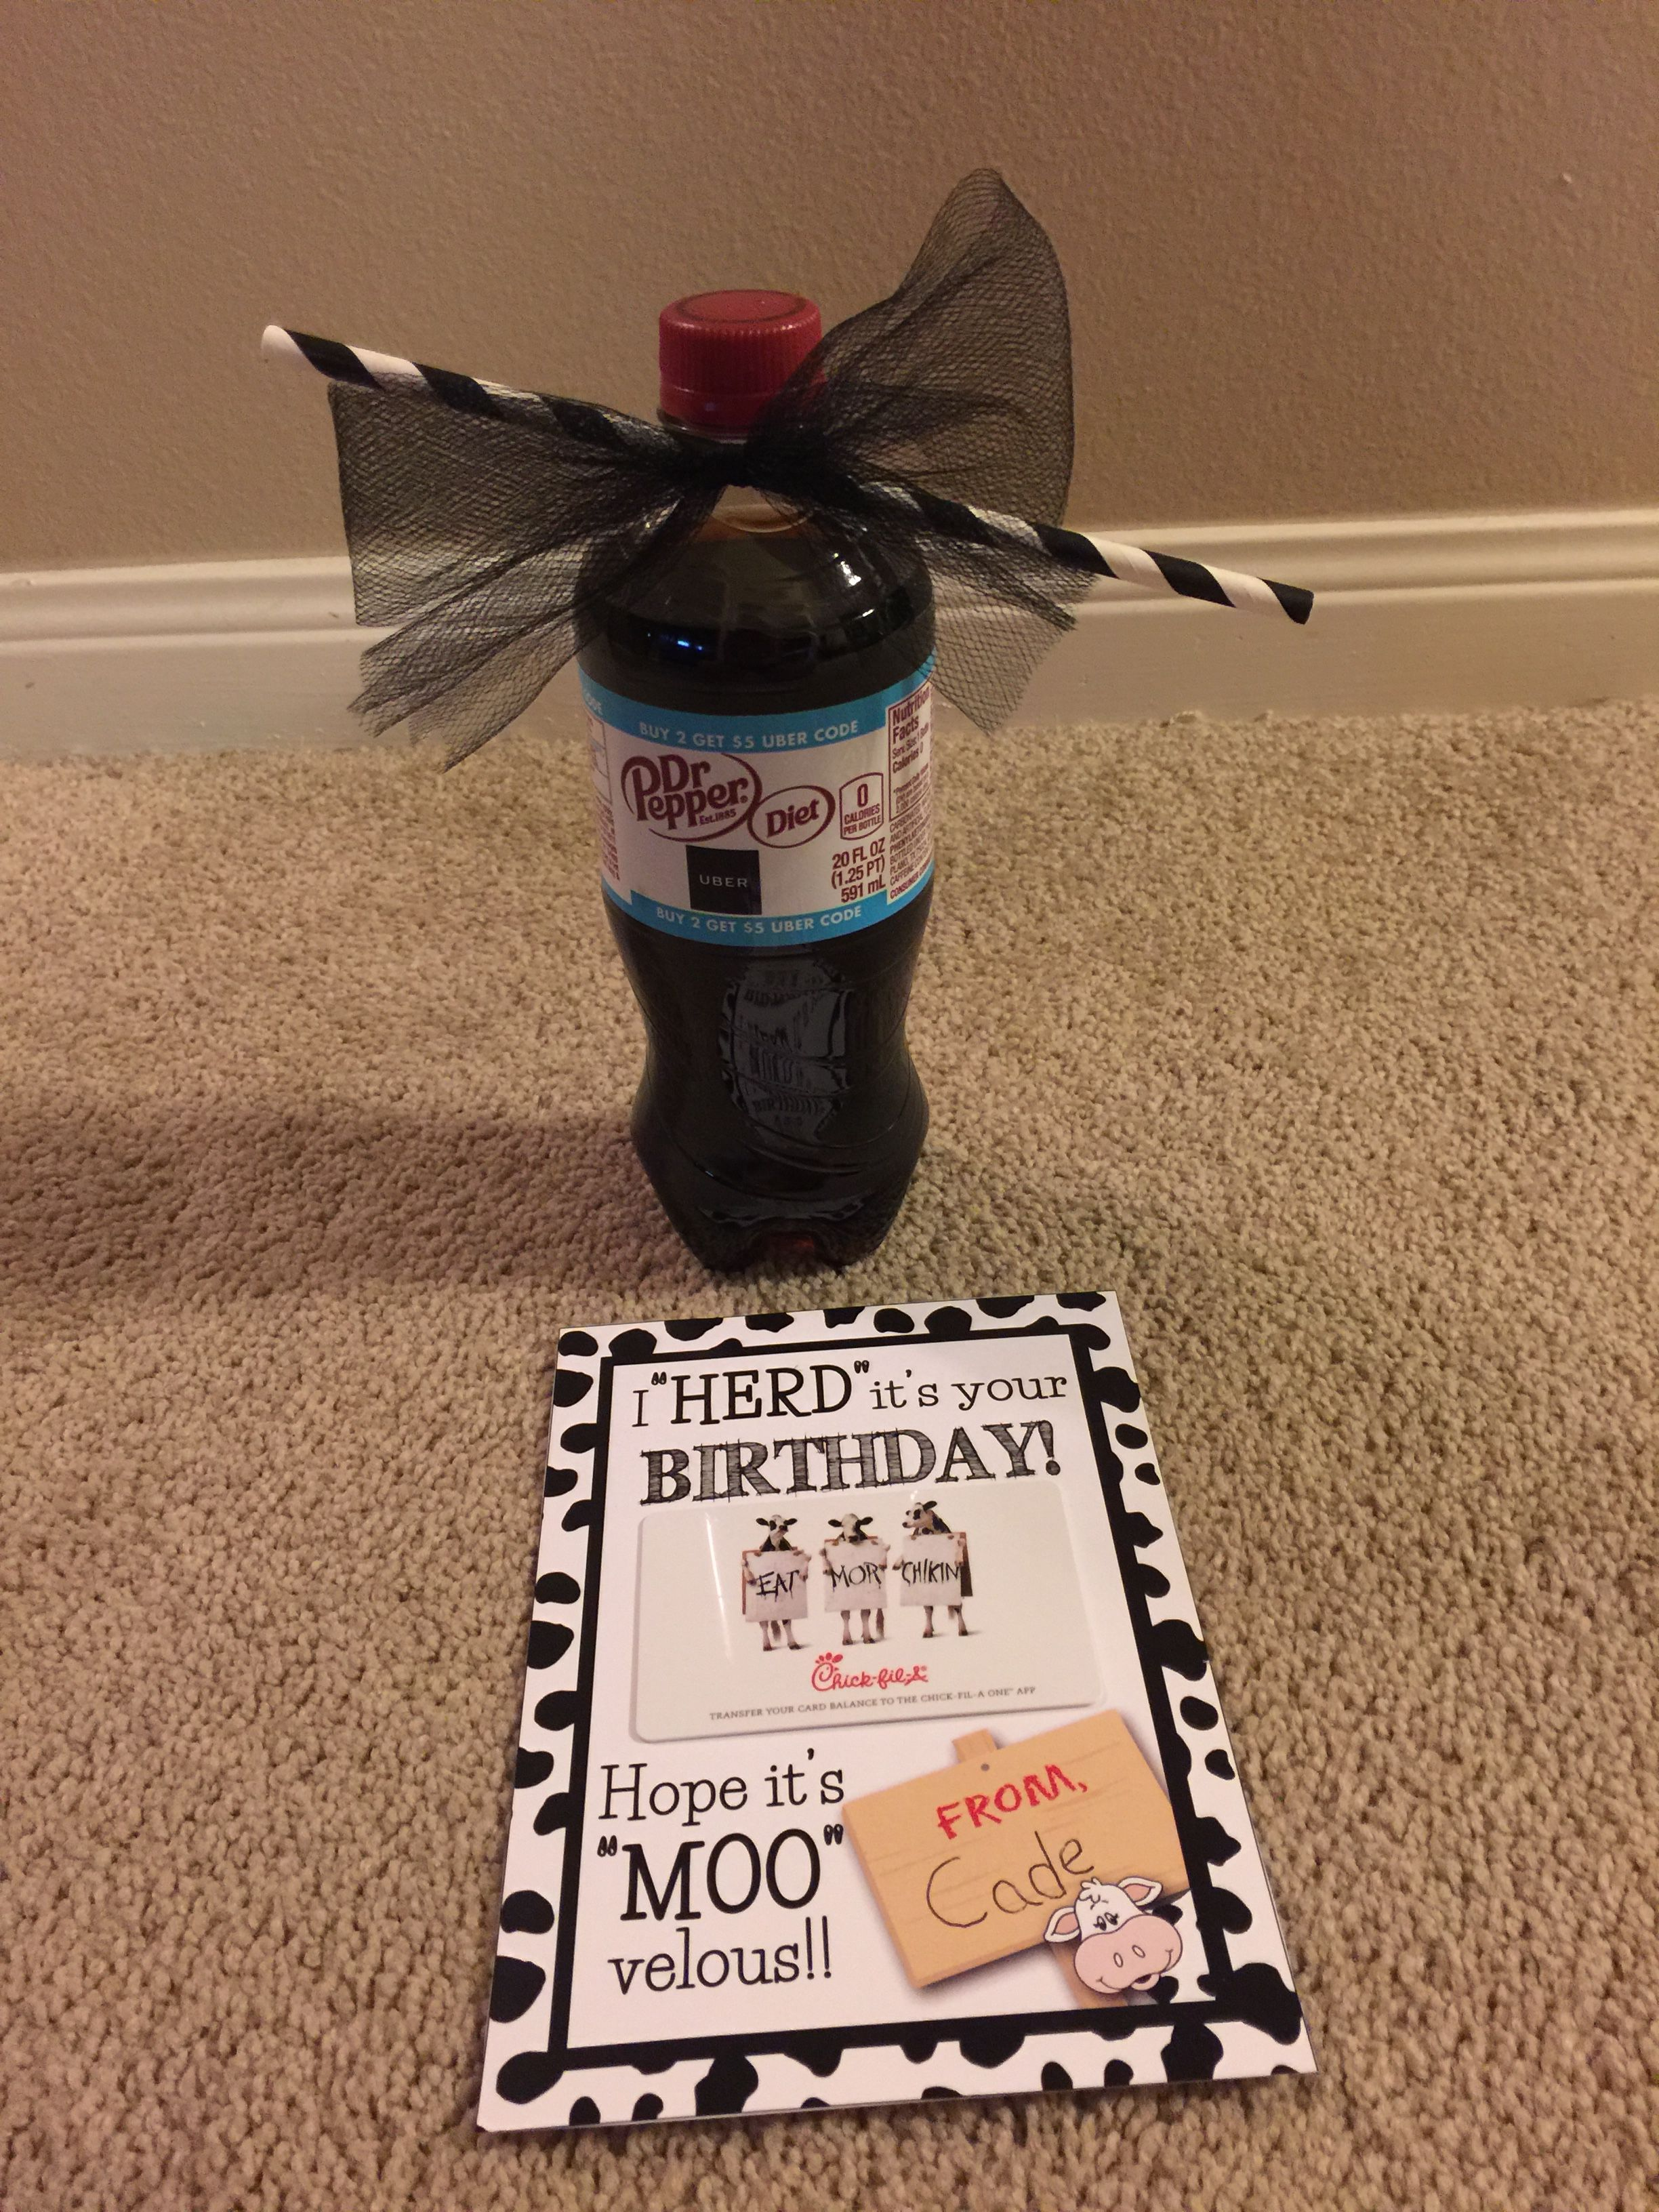 Teacher Birthday Gift Her Favorite Drink Diet Dr Pepper And A Chick Fil Card One Of Restaurants Added Bow Paper Straw For